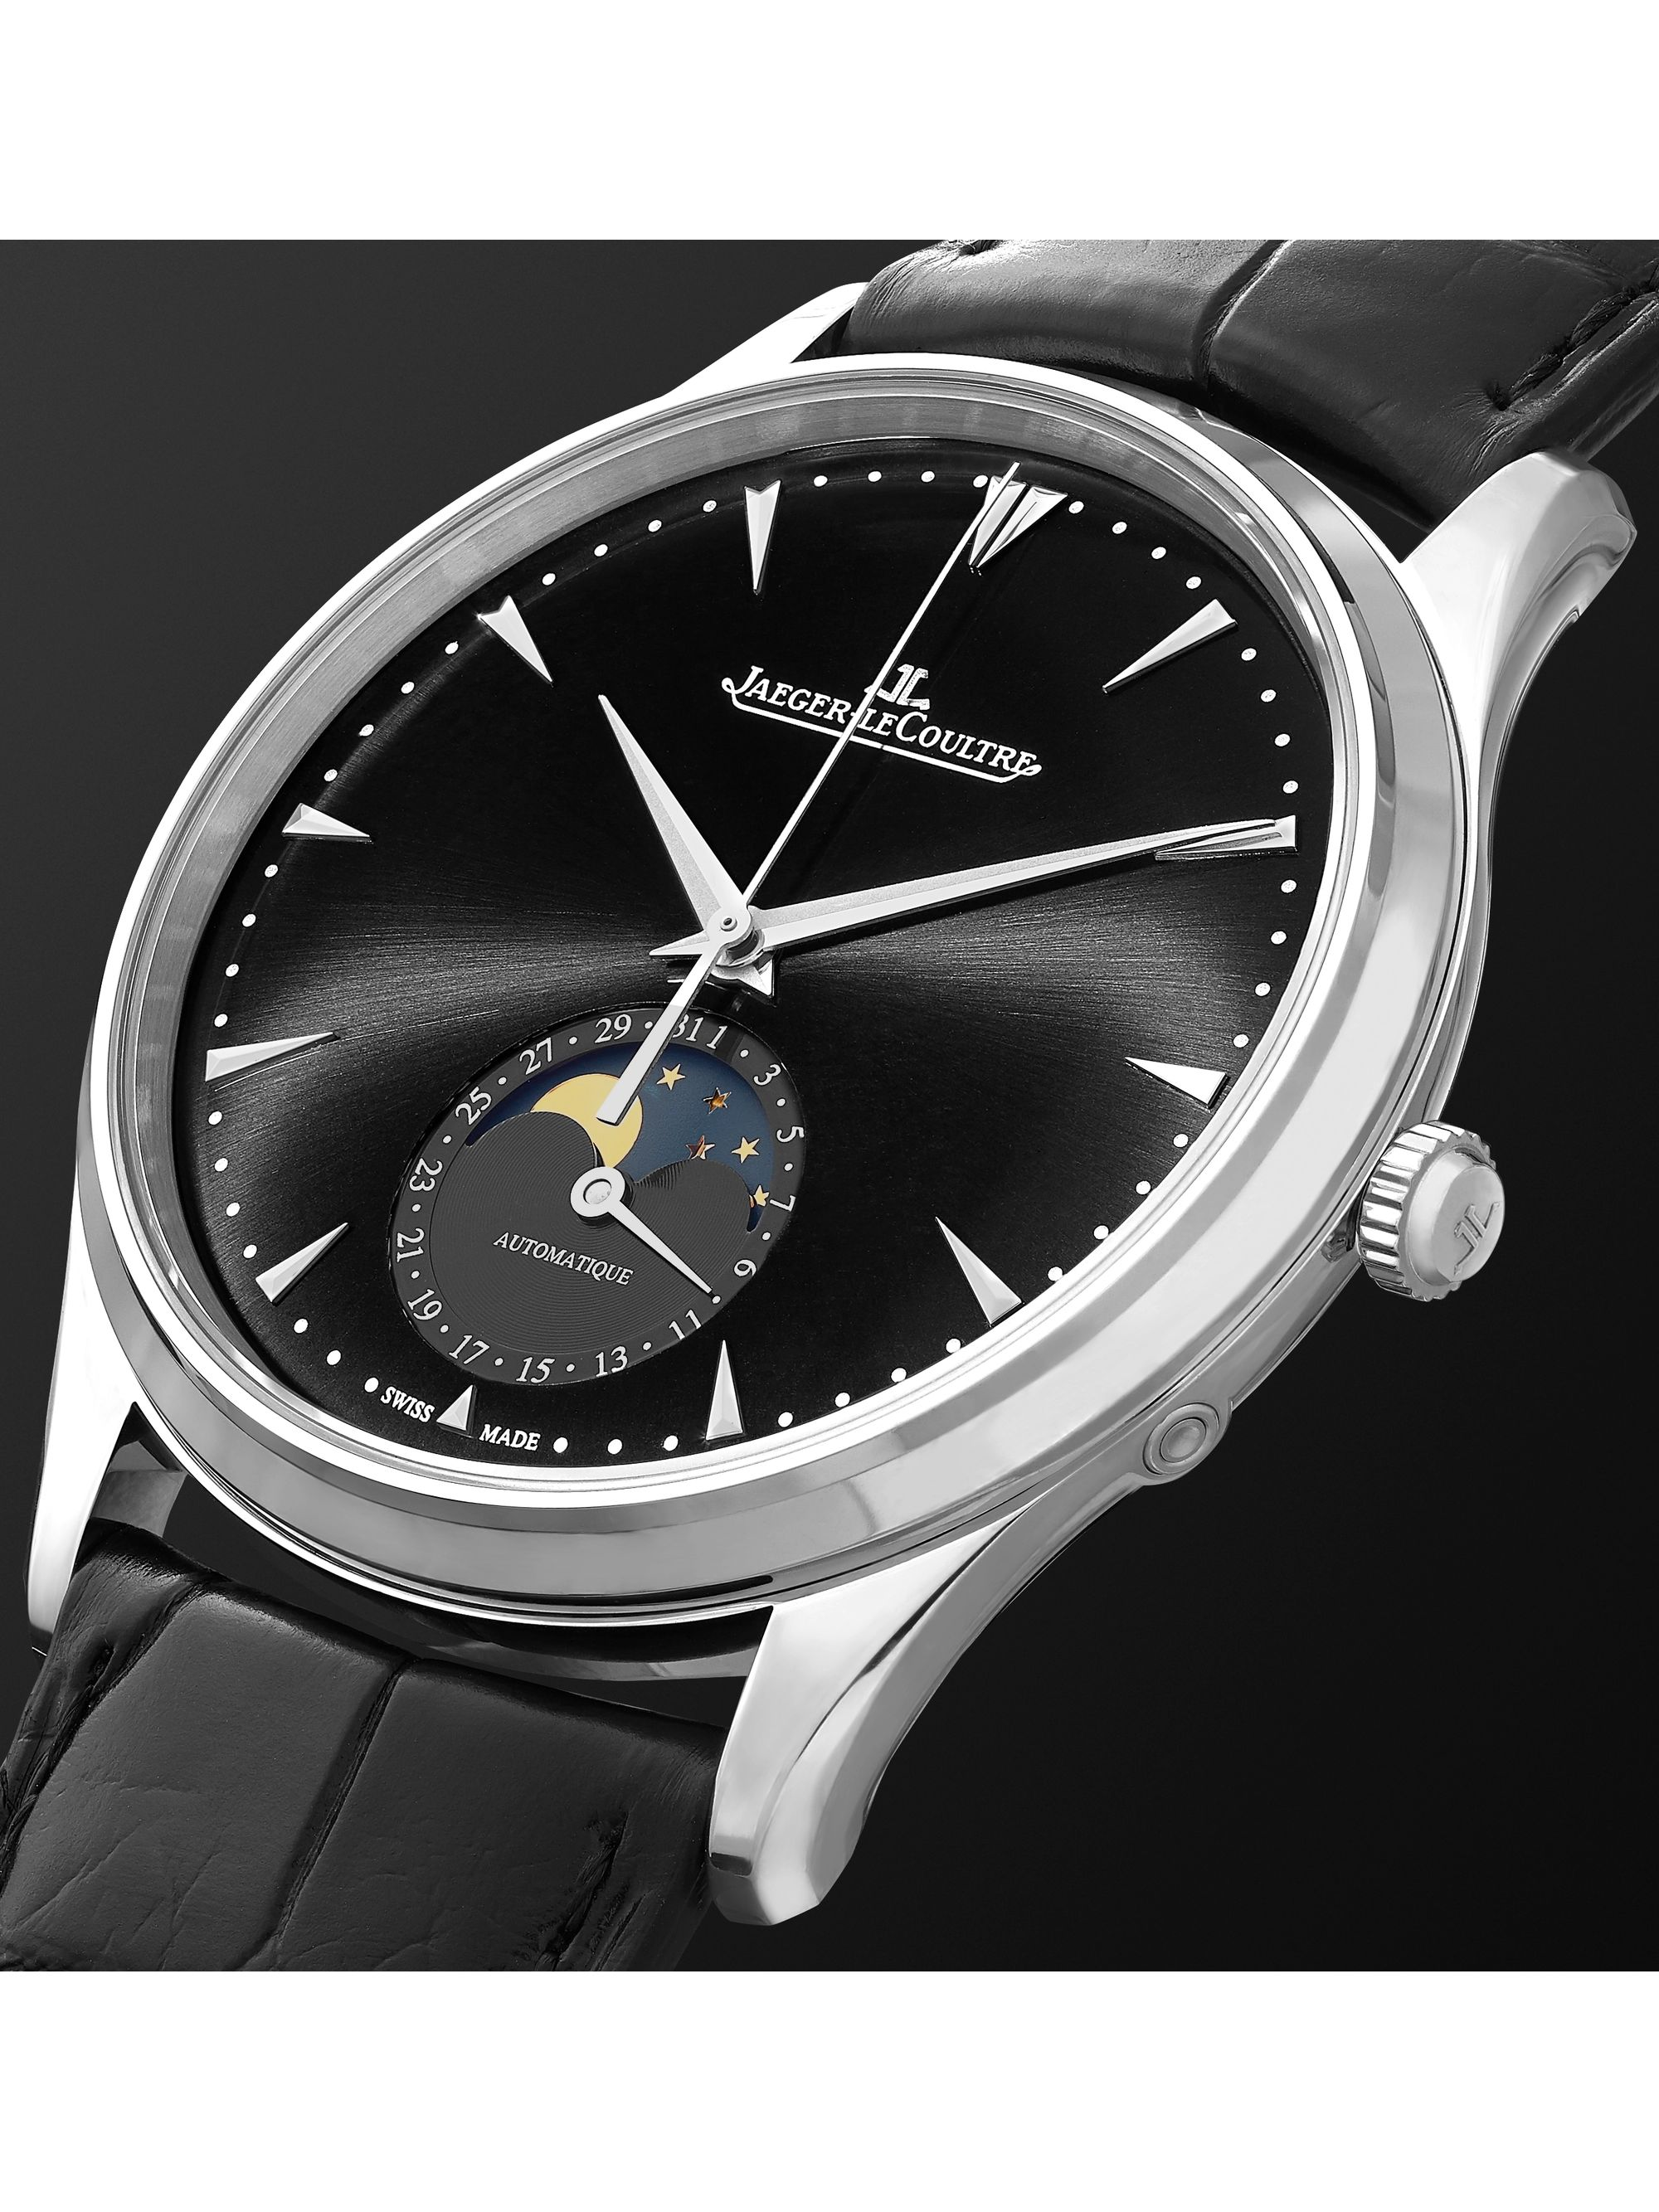 Jaeger-LeCoultre Master Ultra Thin Moon Automatic 39mm Stainless Steel and Leather Watch, Ref. No. Q9008480